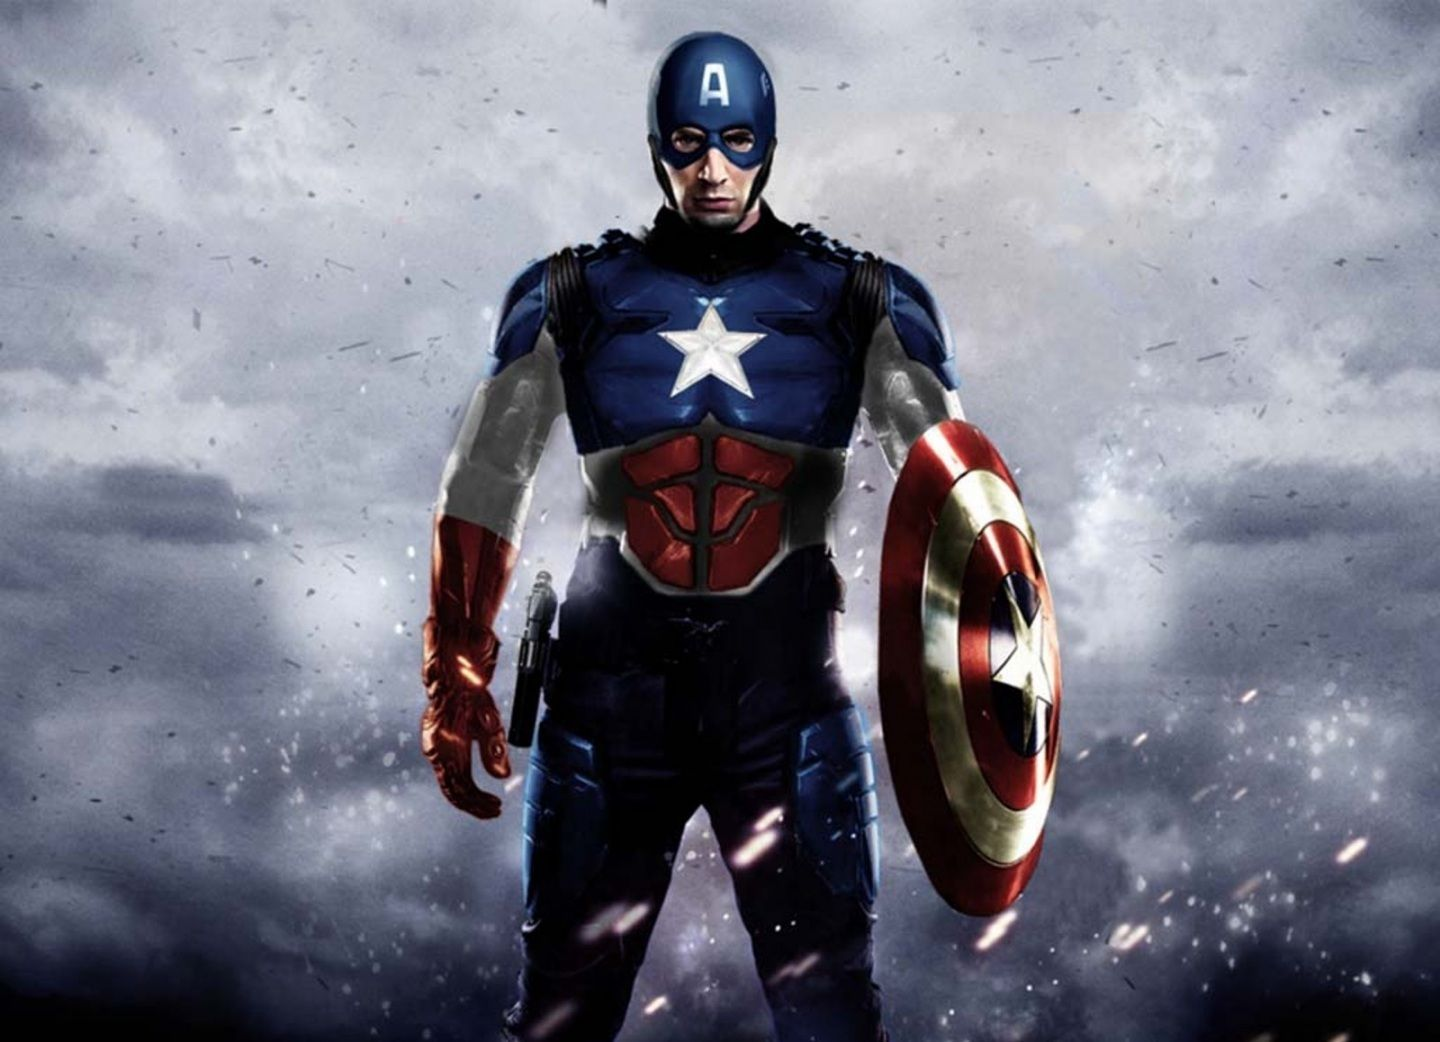 Captain america the first avenger hd wallpapers - Captain america hd mobile wallpaper ...